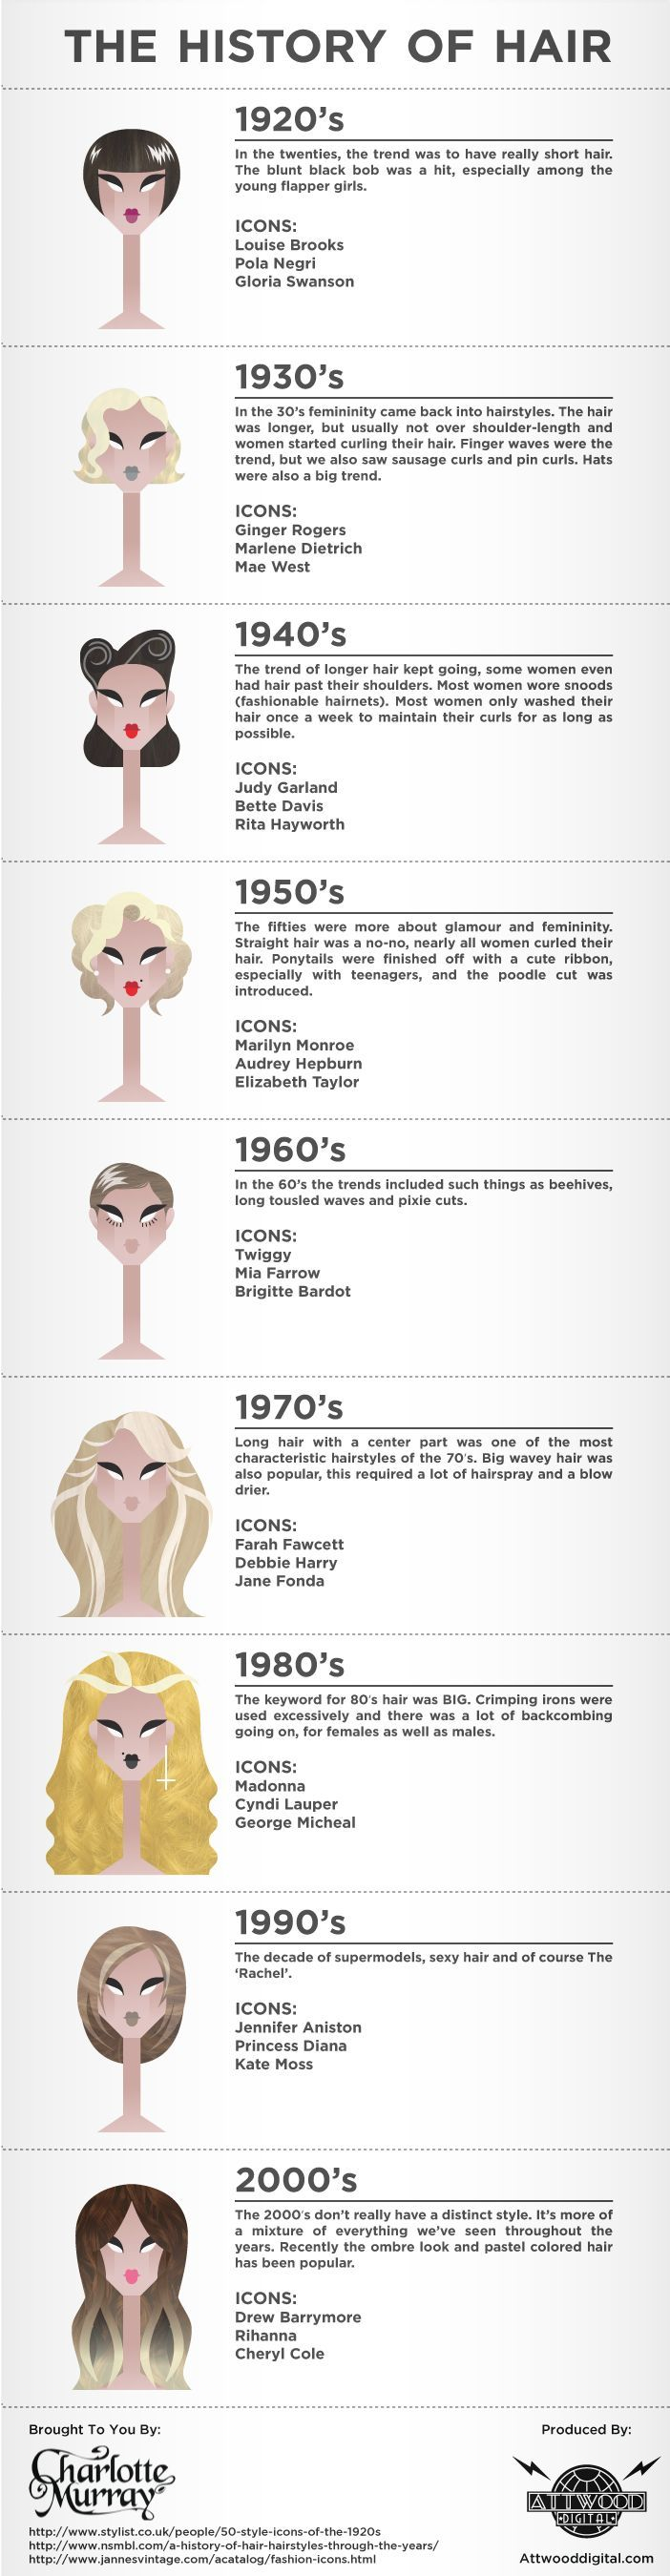 20 Of The Most Famous Hairstyles Throughout History